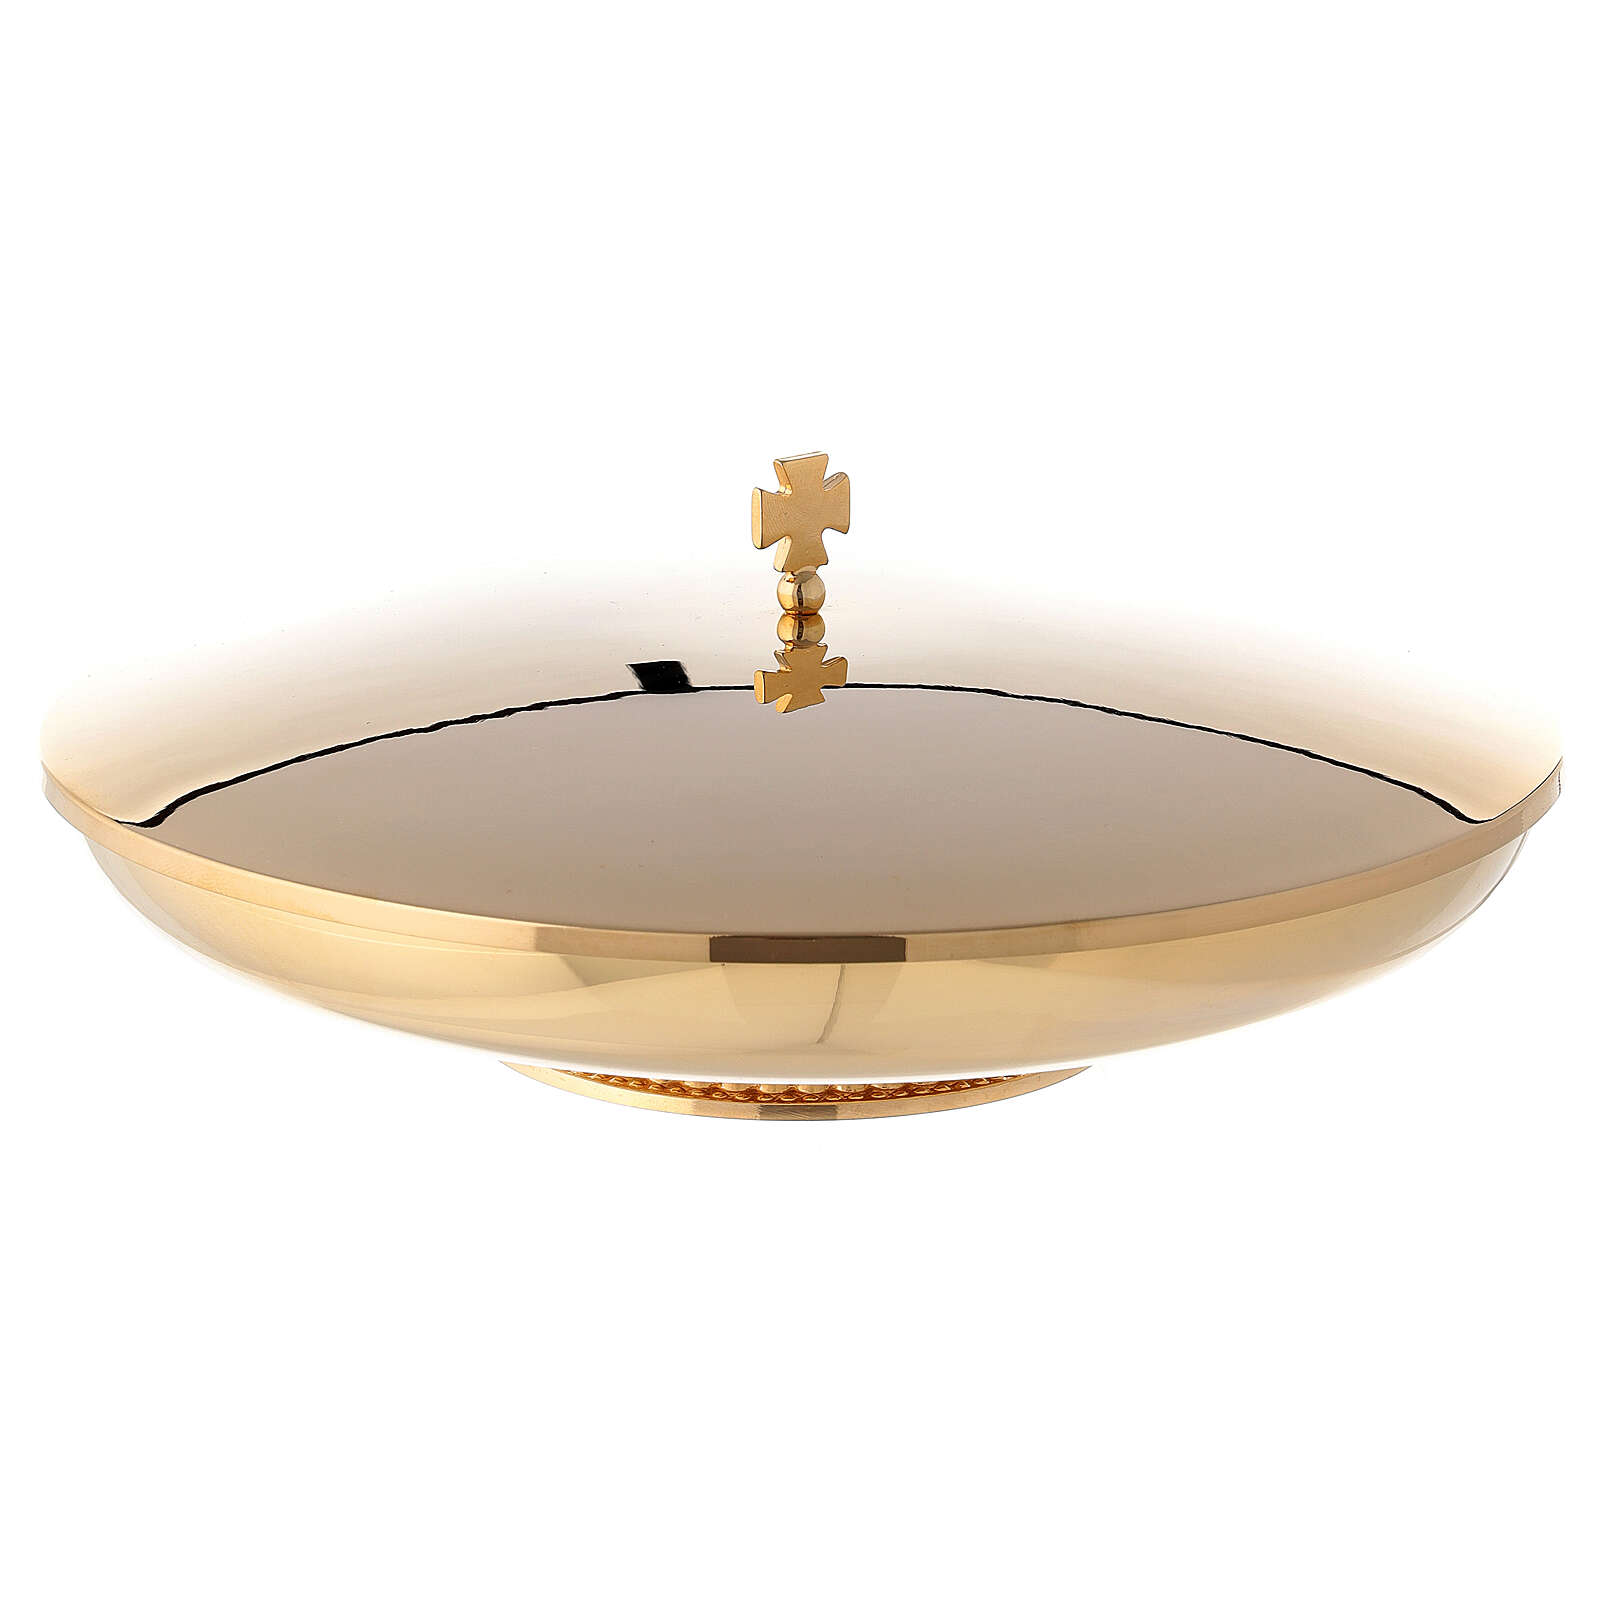 Open gold plated ciborium with cover and decorated base diam. 9 in 4